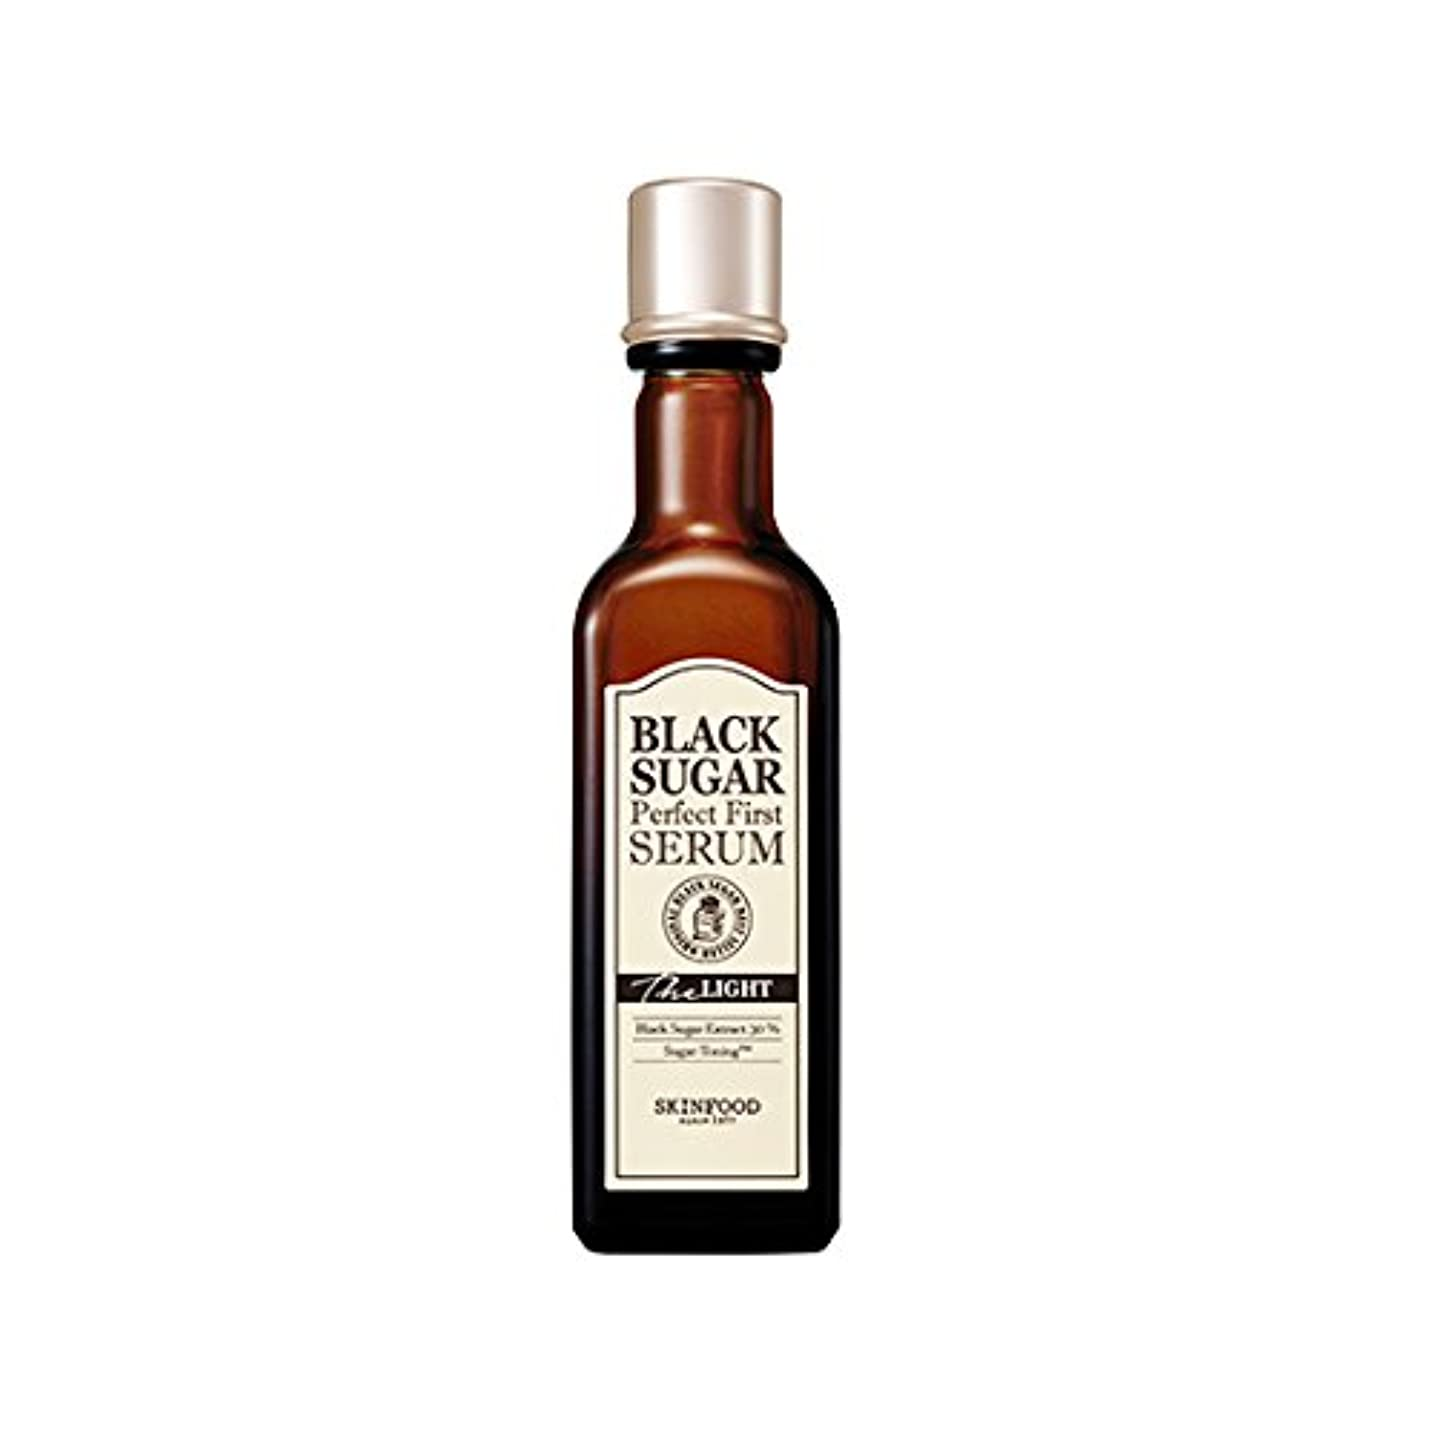 Skinfood black sugar perfect first serum the light/黒糖完全最初血清ライト/120ml + 60? [並行輸入品]